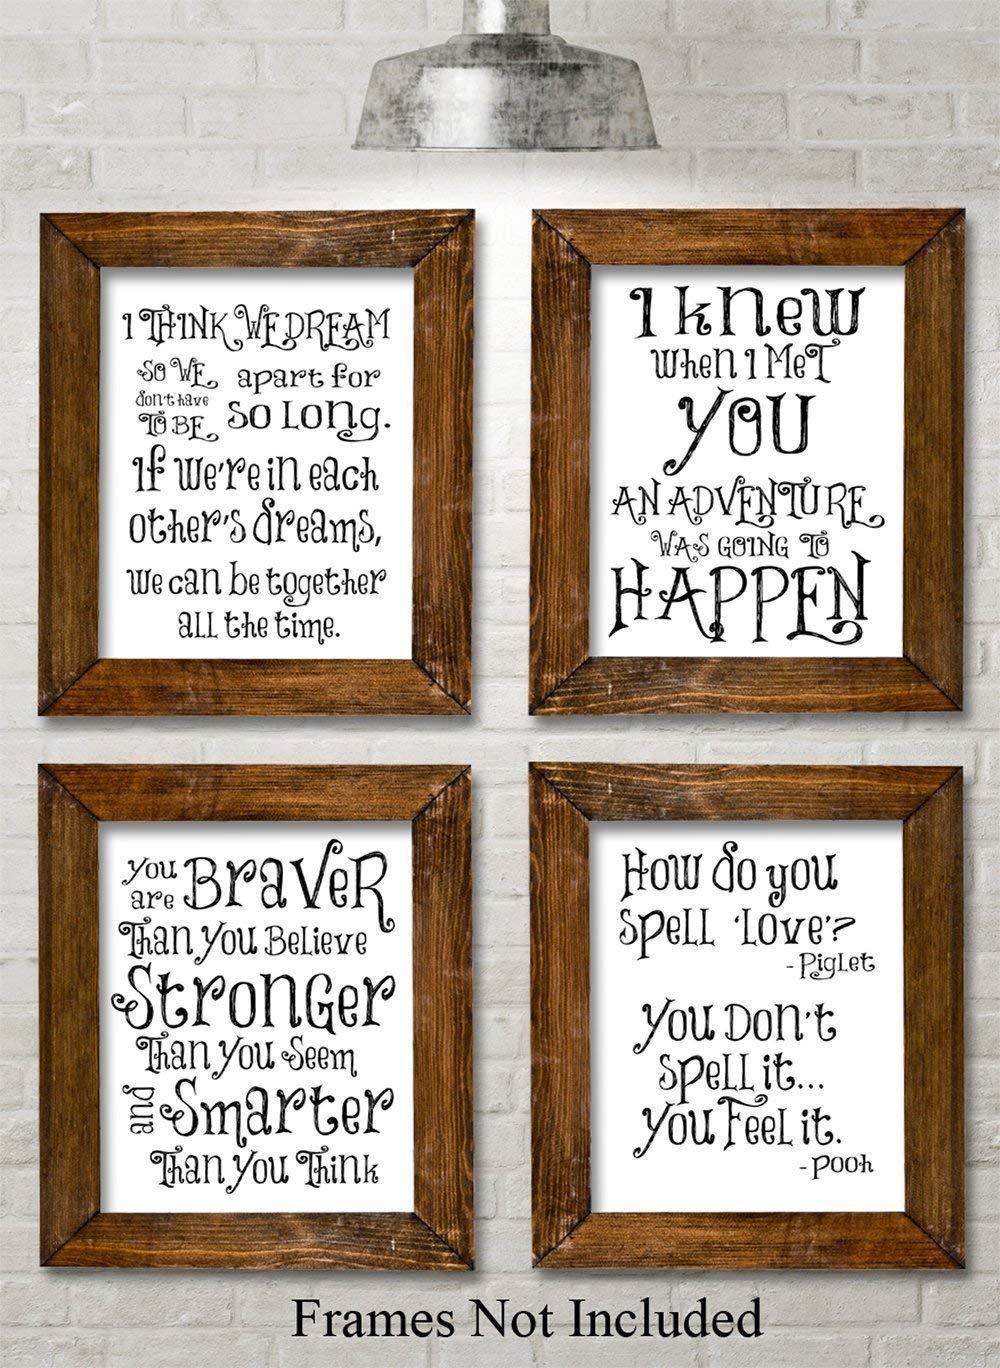 Winnie the Pooh Quotes and Sayings Art Prints - Set of Four Photos (8x10) Unframed - Great Gift for Nursery Rooms, Boy's Room or Girl's Room Decor